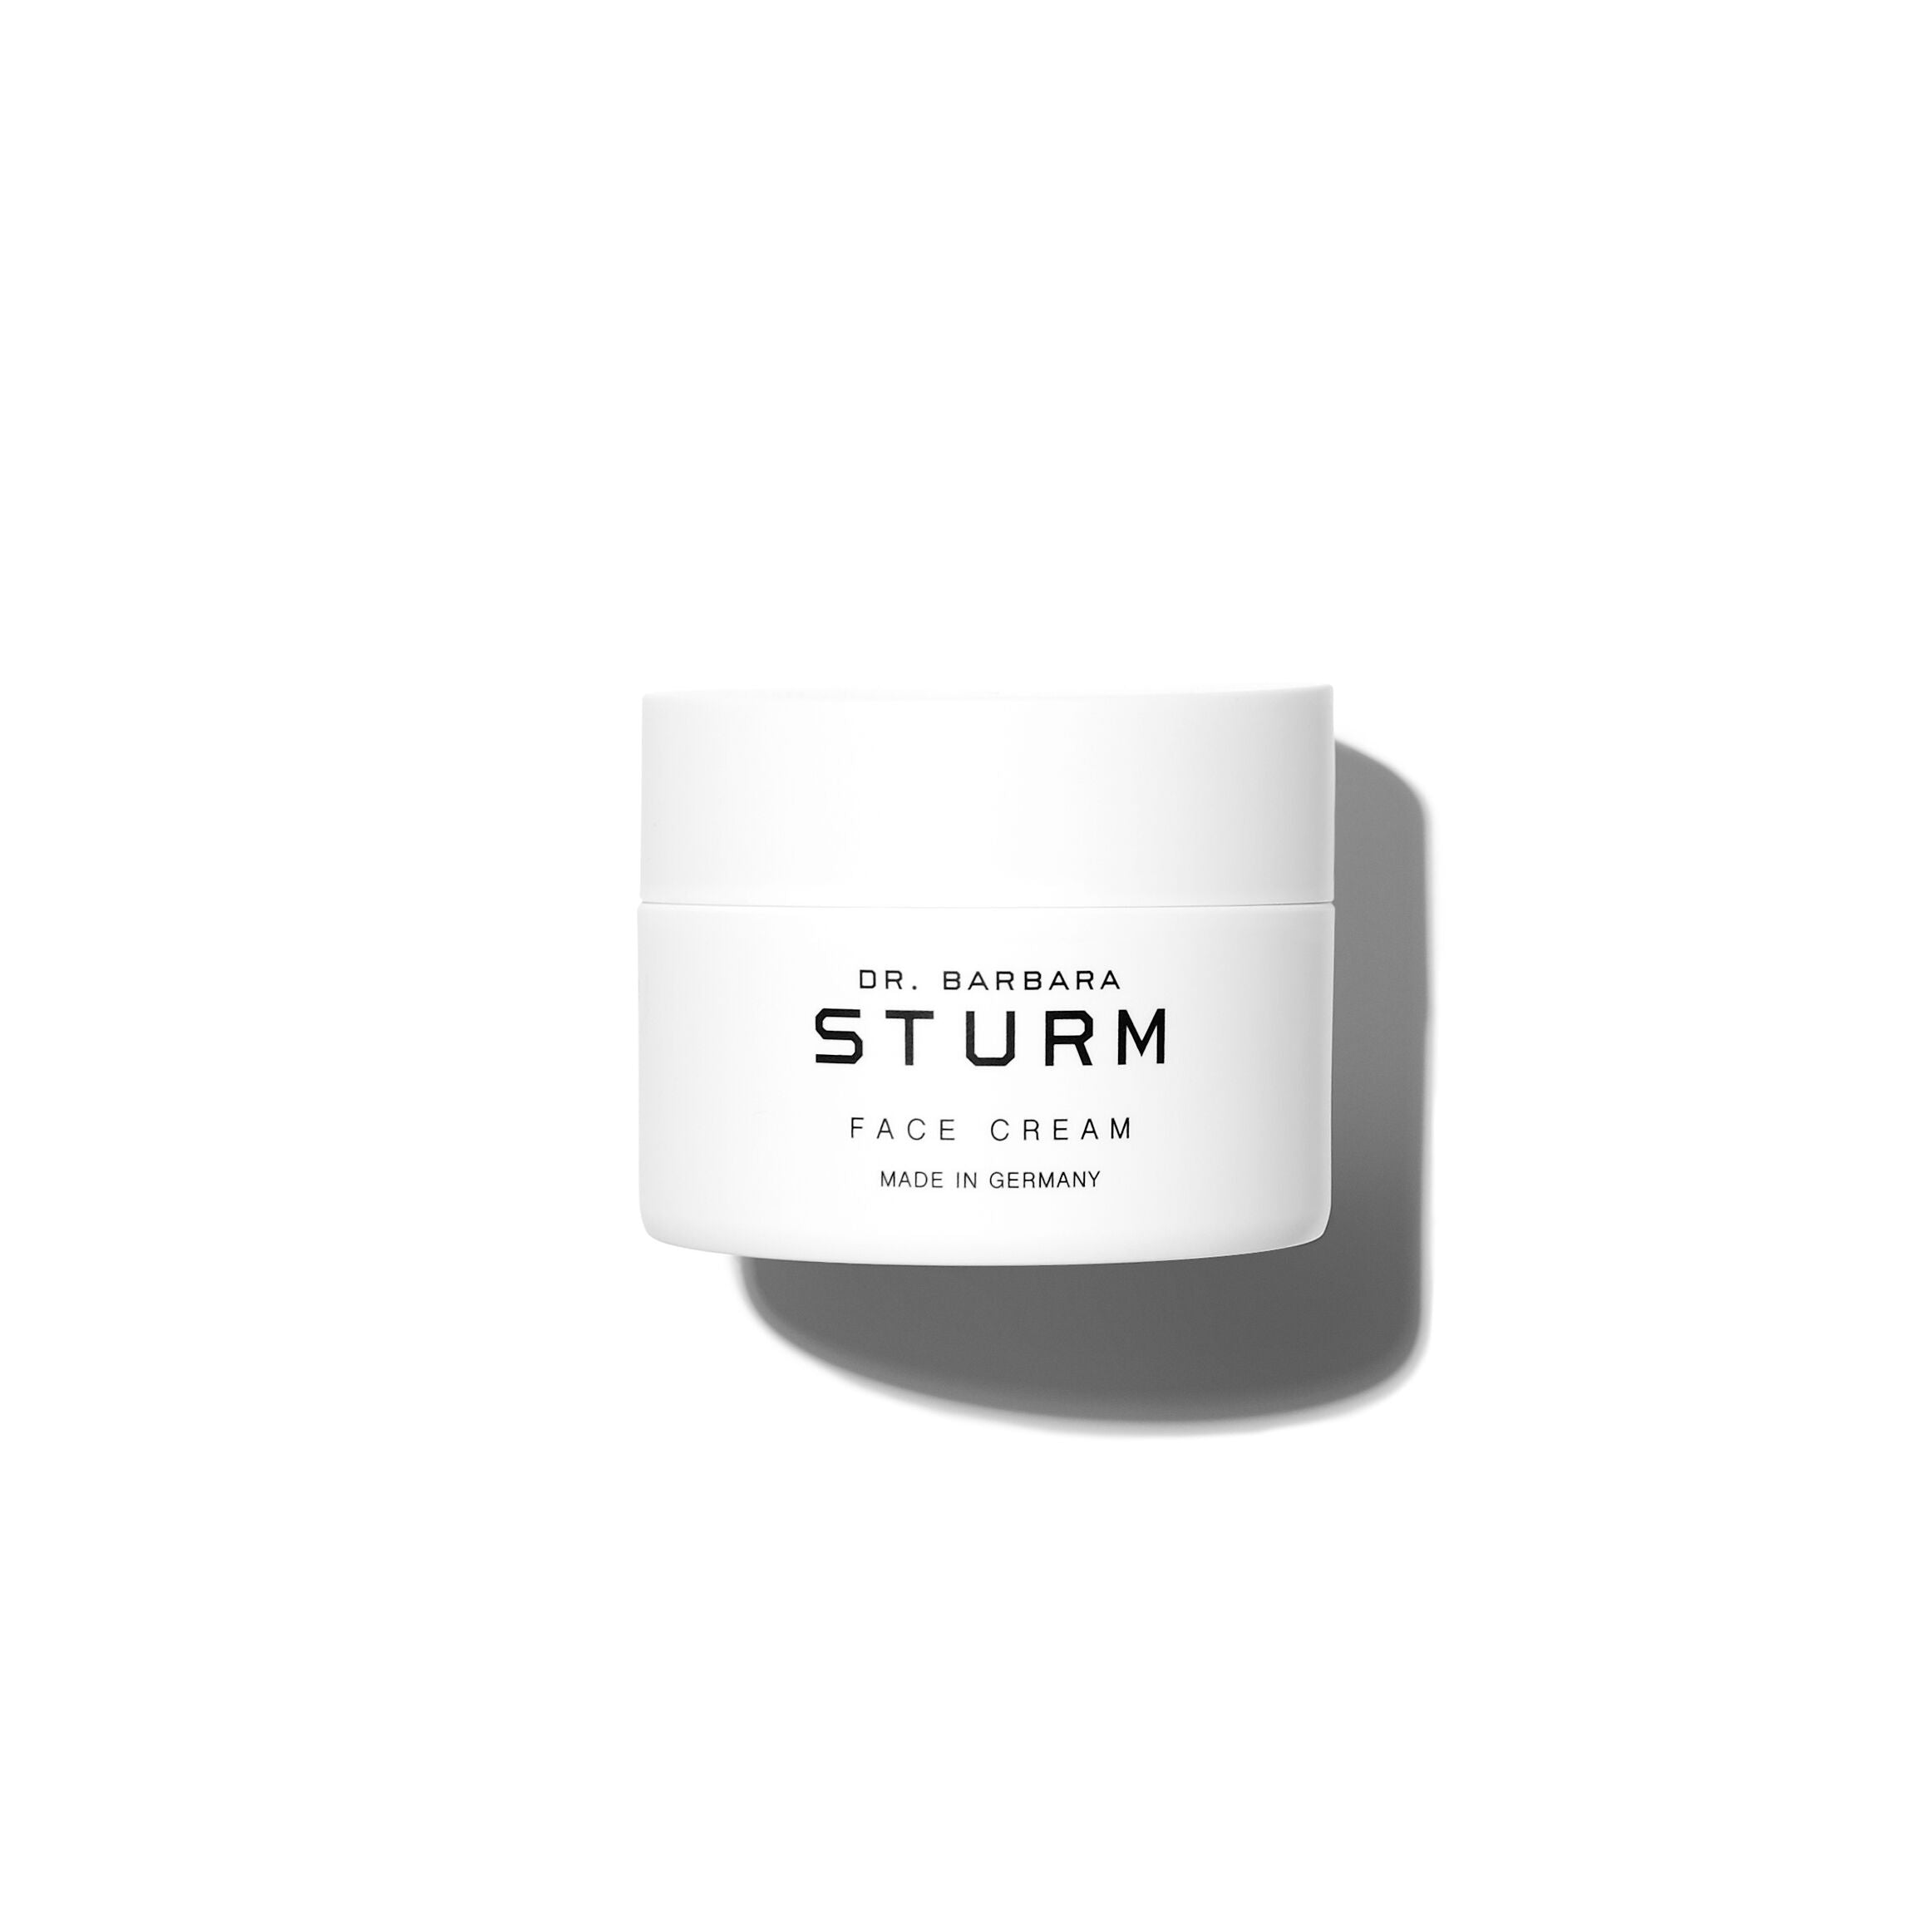 Buy Dr. Babara Sturm Face Cream wellness products from Delaire Graff Estate online store